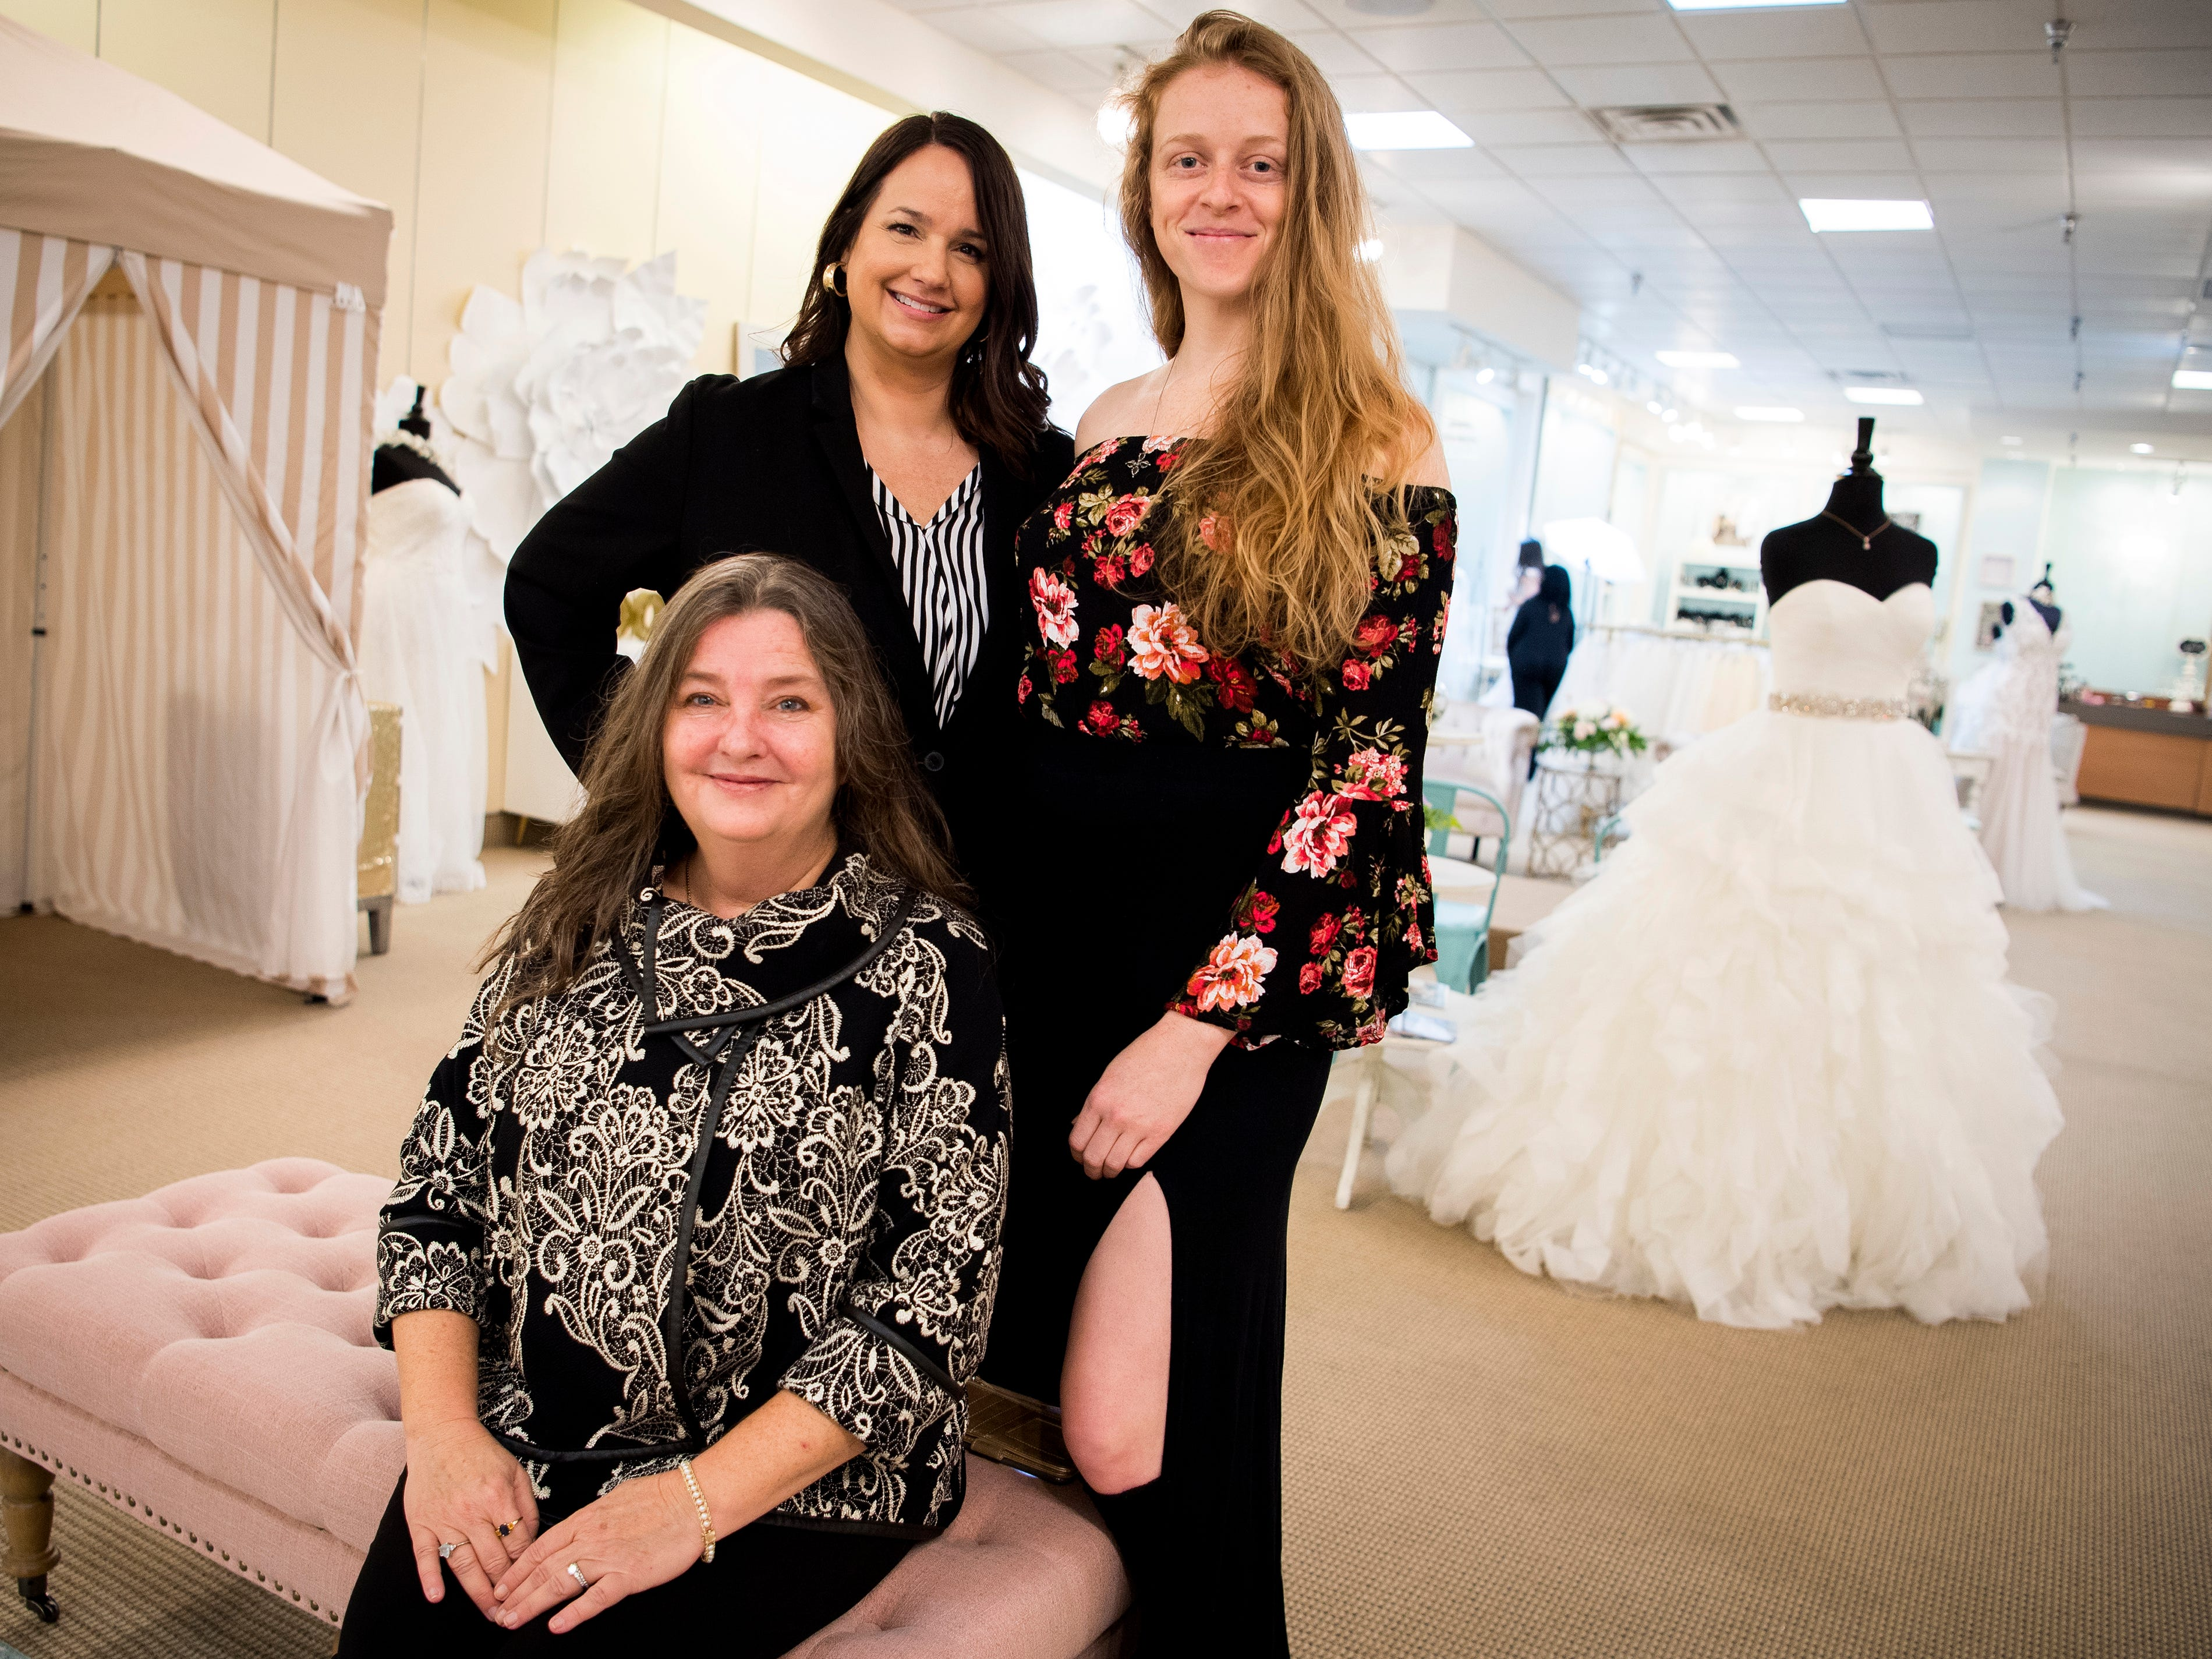 Owner Jacqui Wadsworth, bottom left, with sister Elizabeth Ethridge, top left, and daughter Grace Alexander, right, at The Gilded Gown at Knoxville Center Mall on Monday, January 14, 2019.